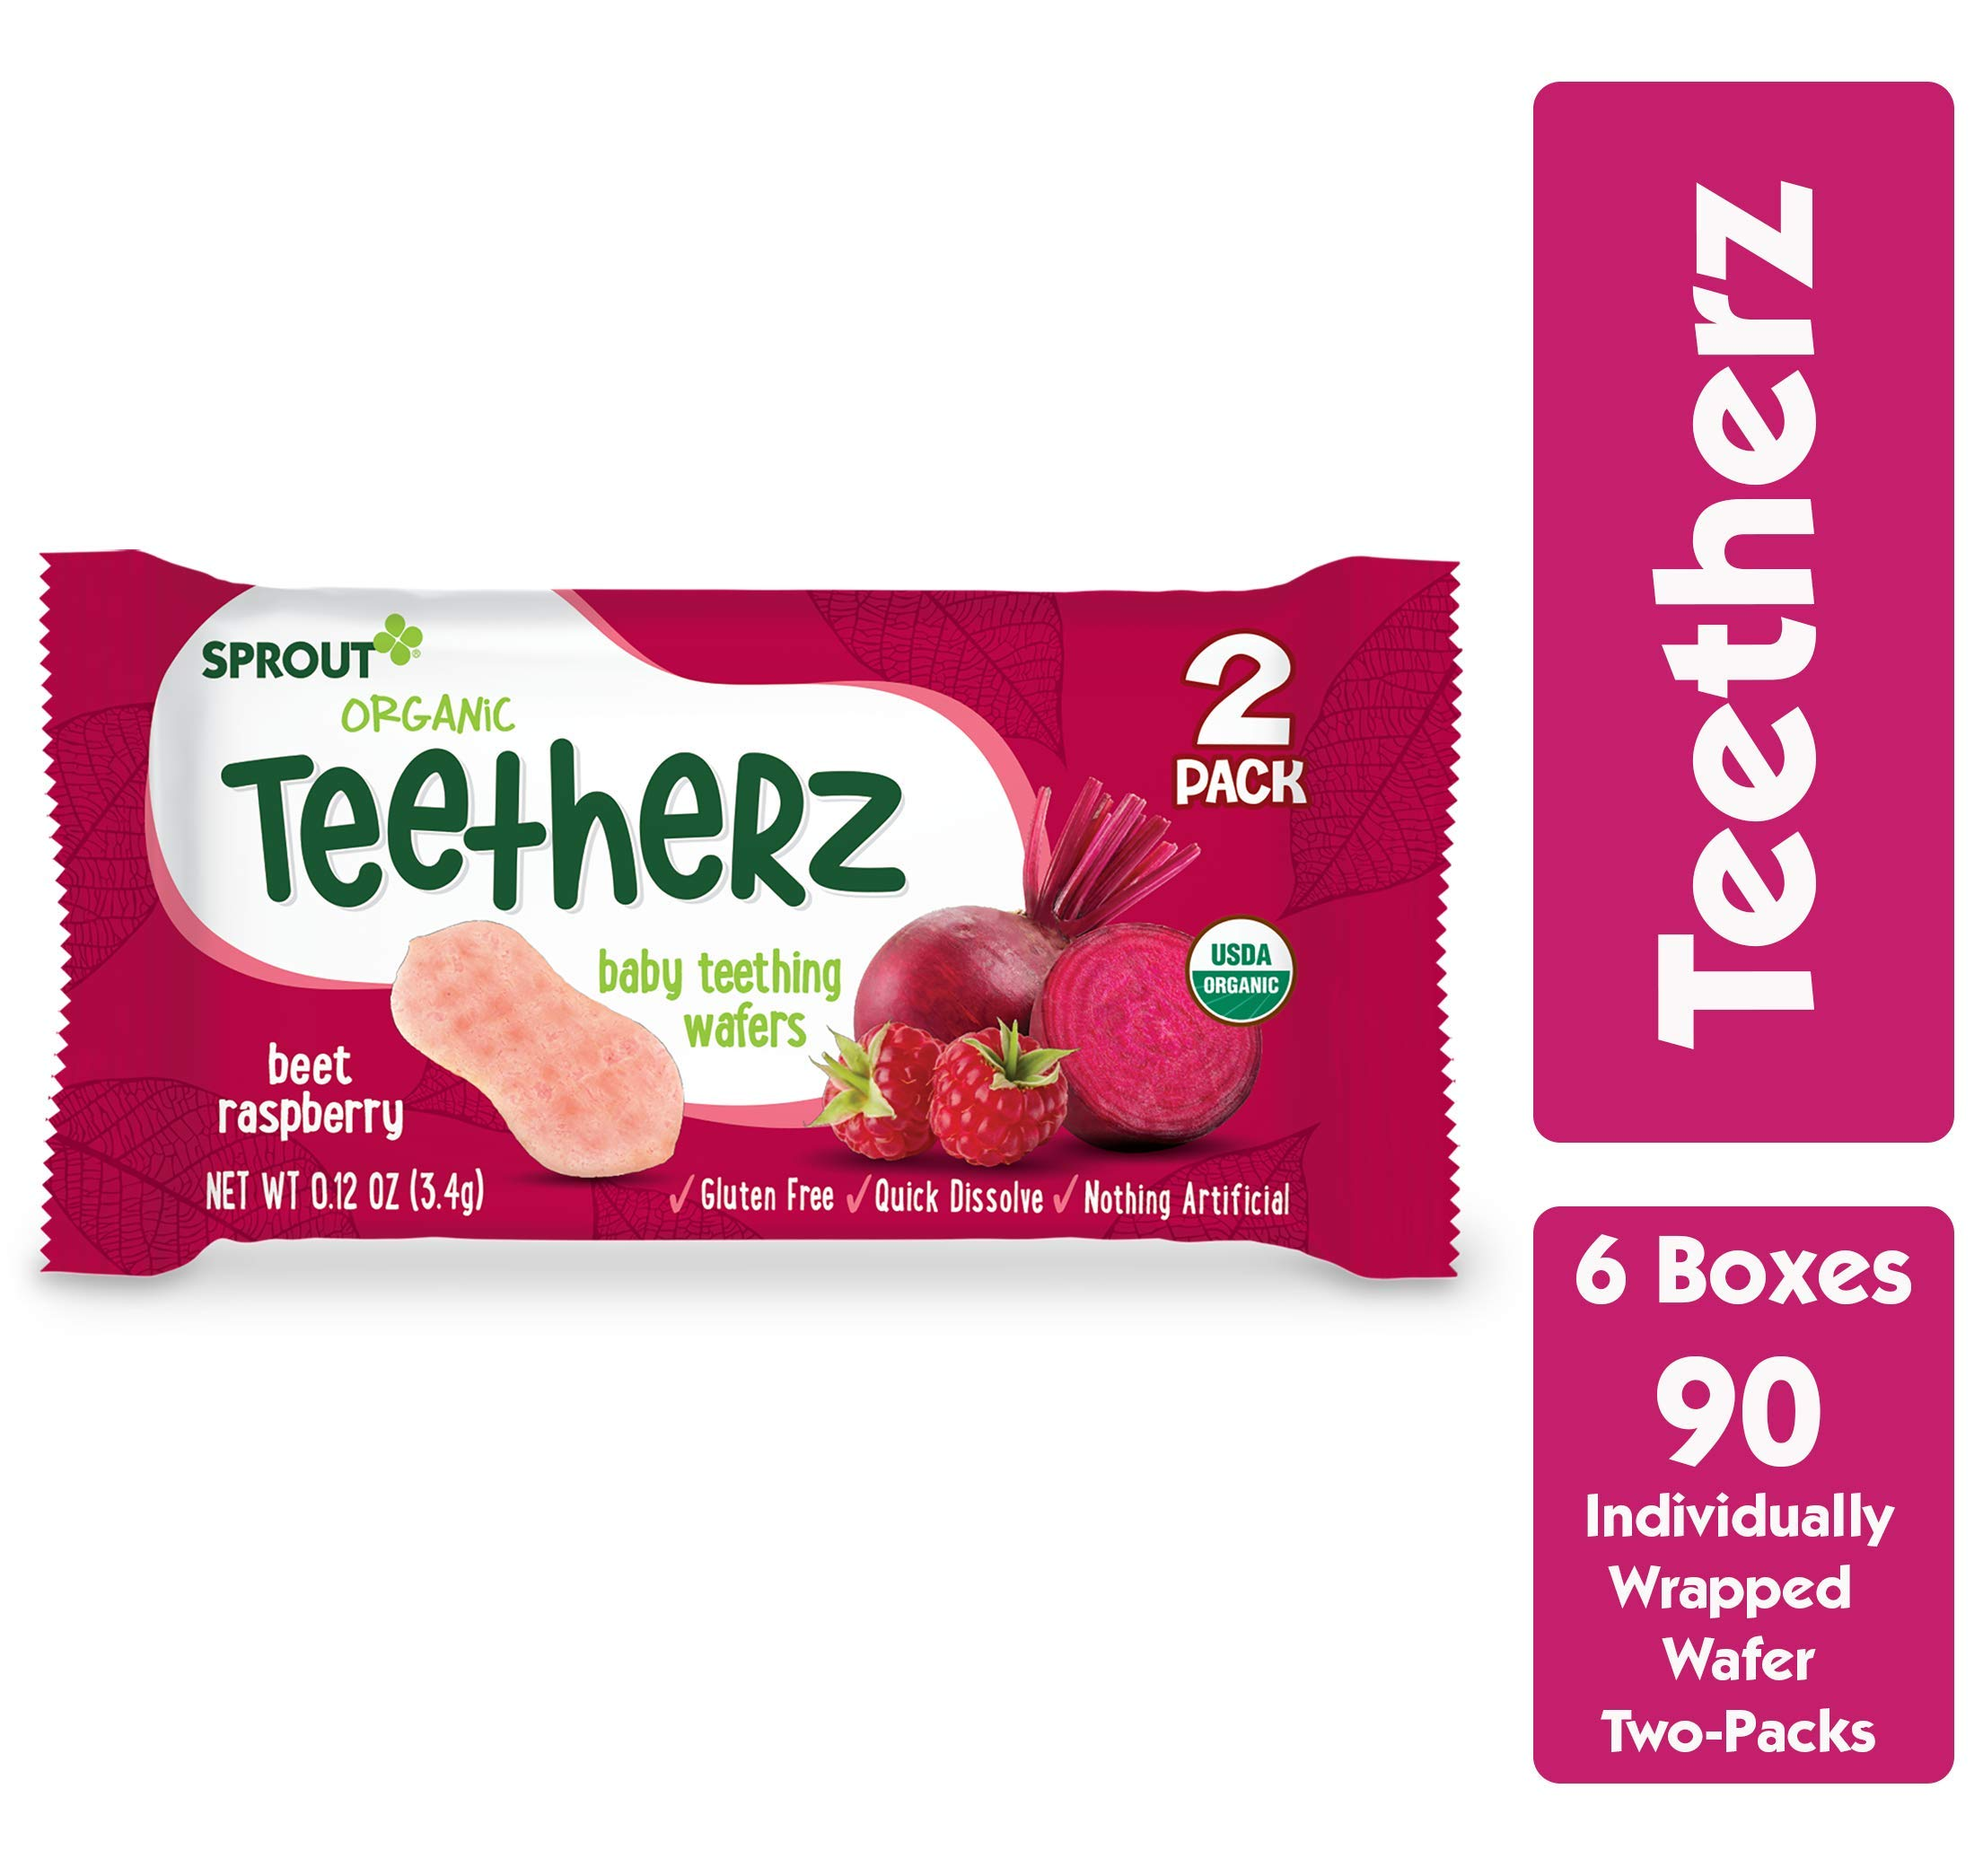 Sprout Organic Teetherz Baby Teething Wafers, Beet Raspberry, Box of 30 (Pack of 6) by Sprout